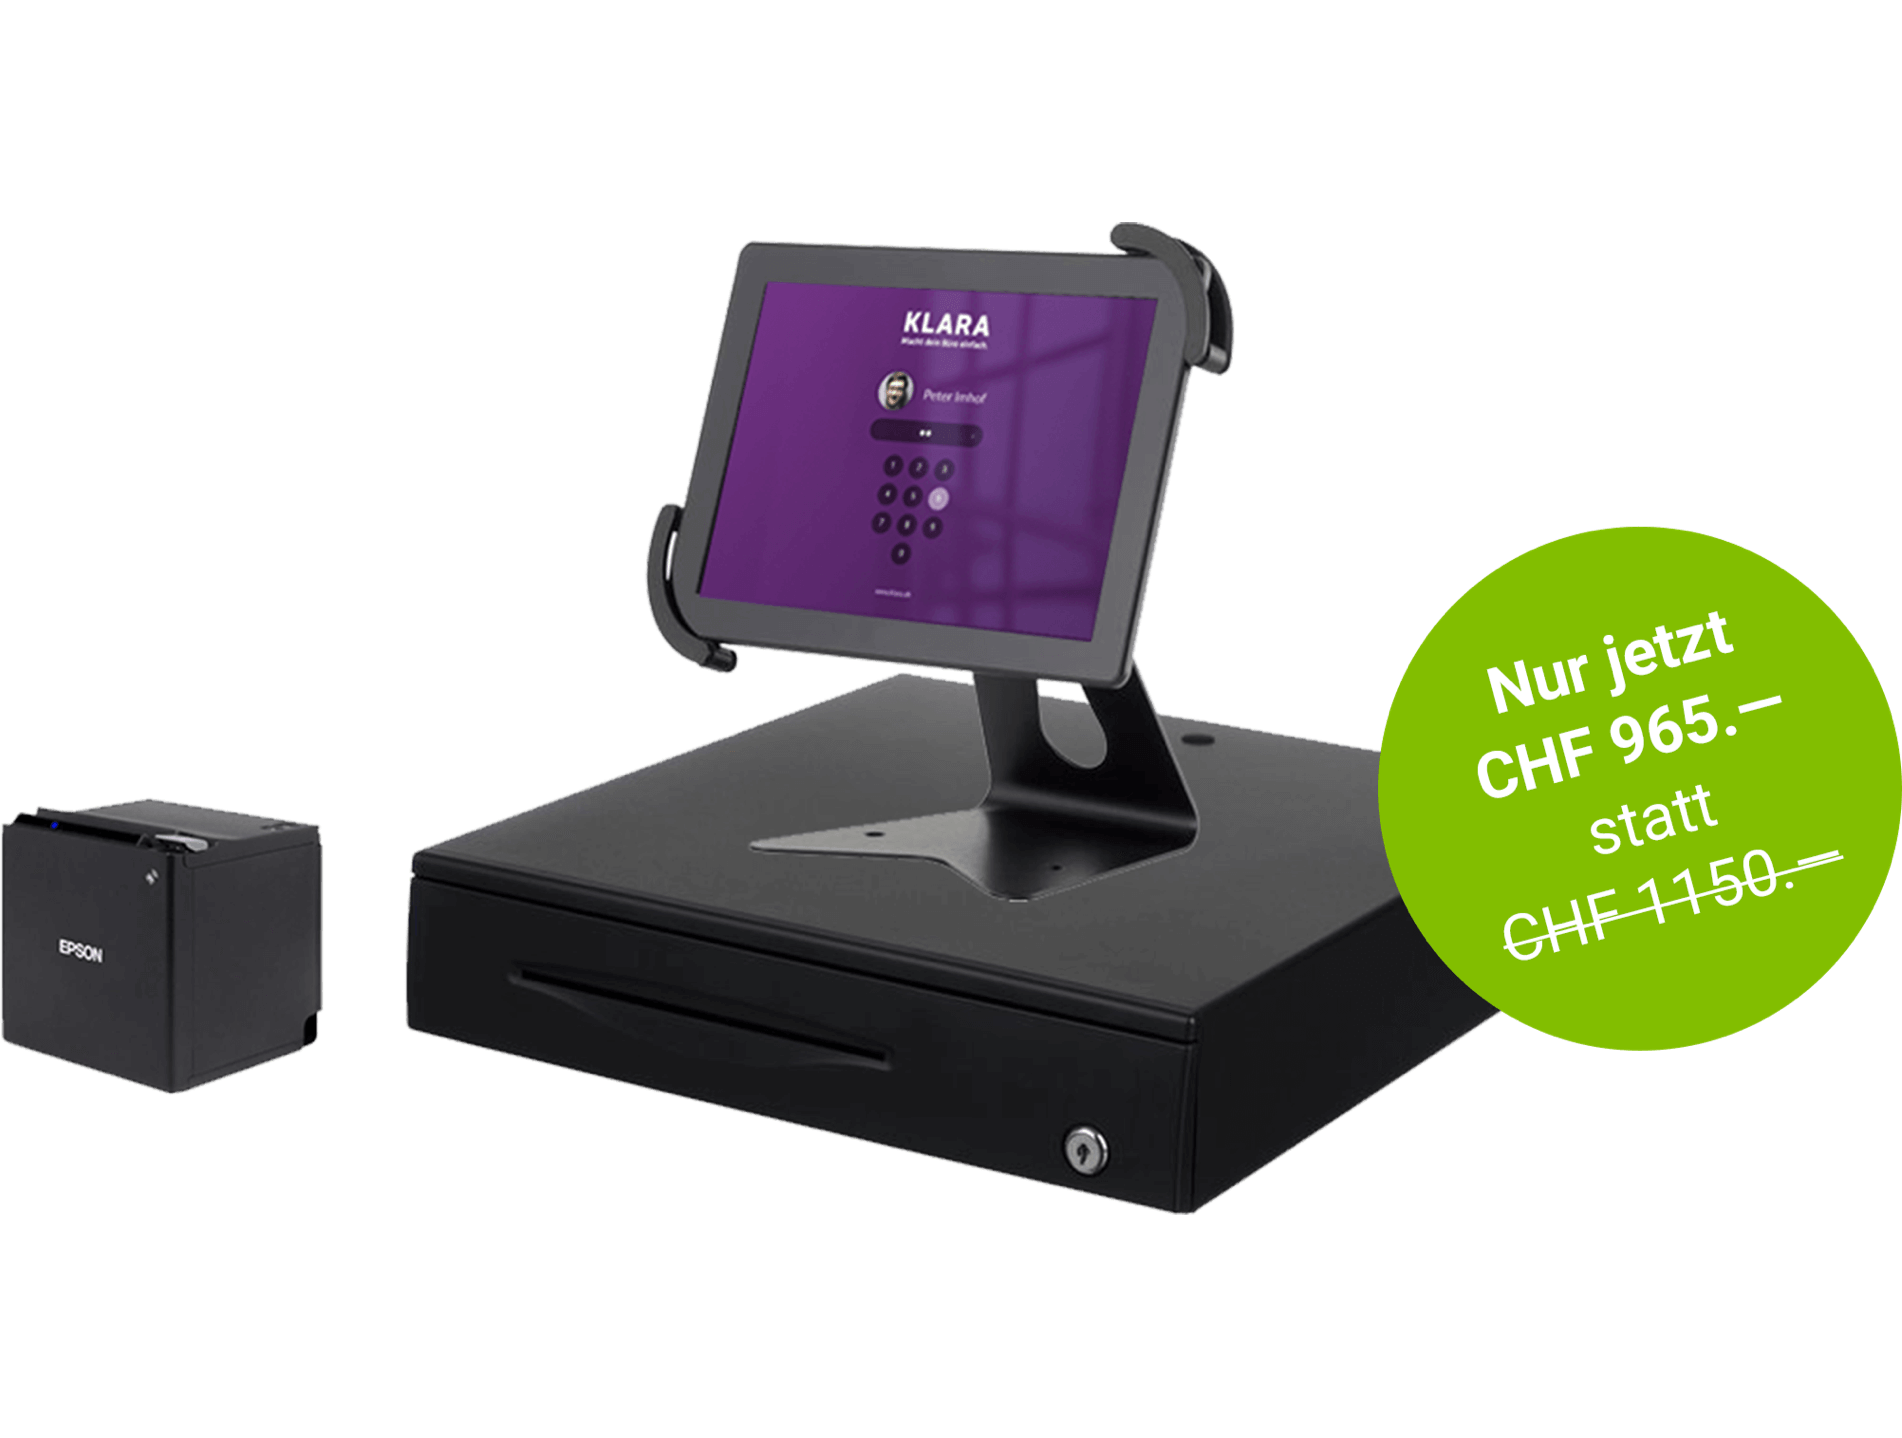 klara-website-large-pos-hardware-de